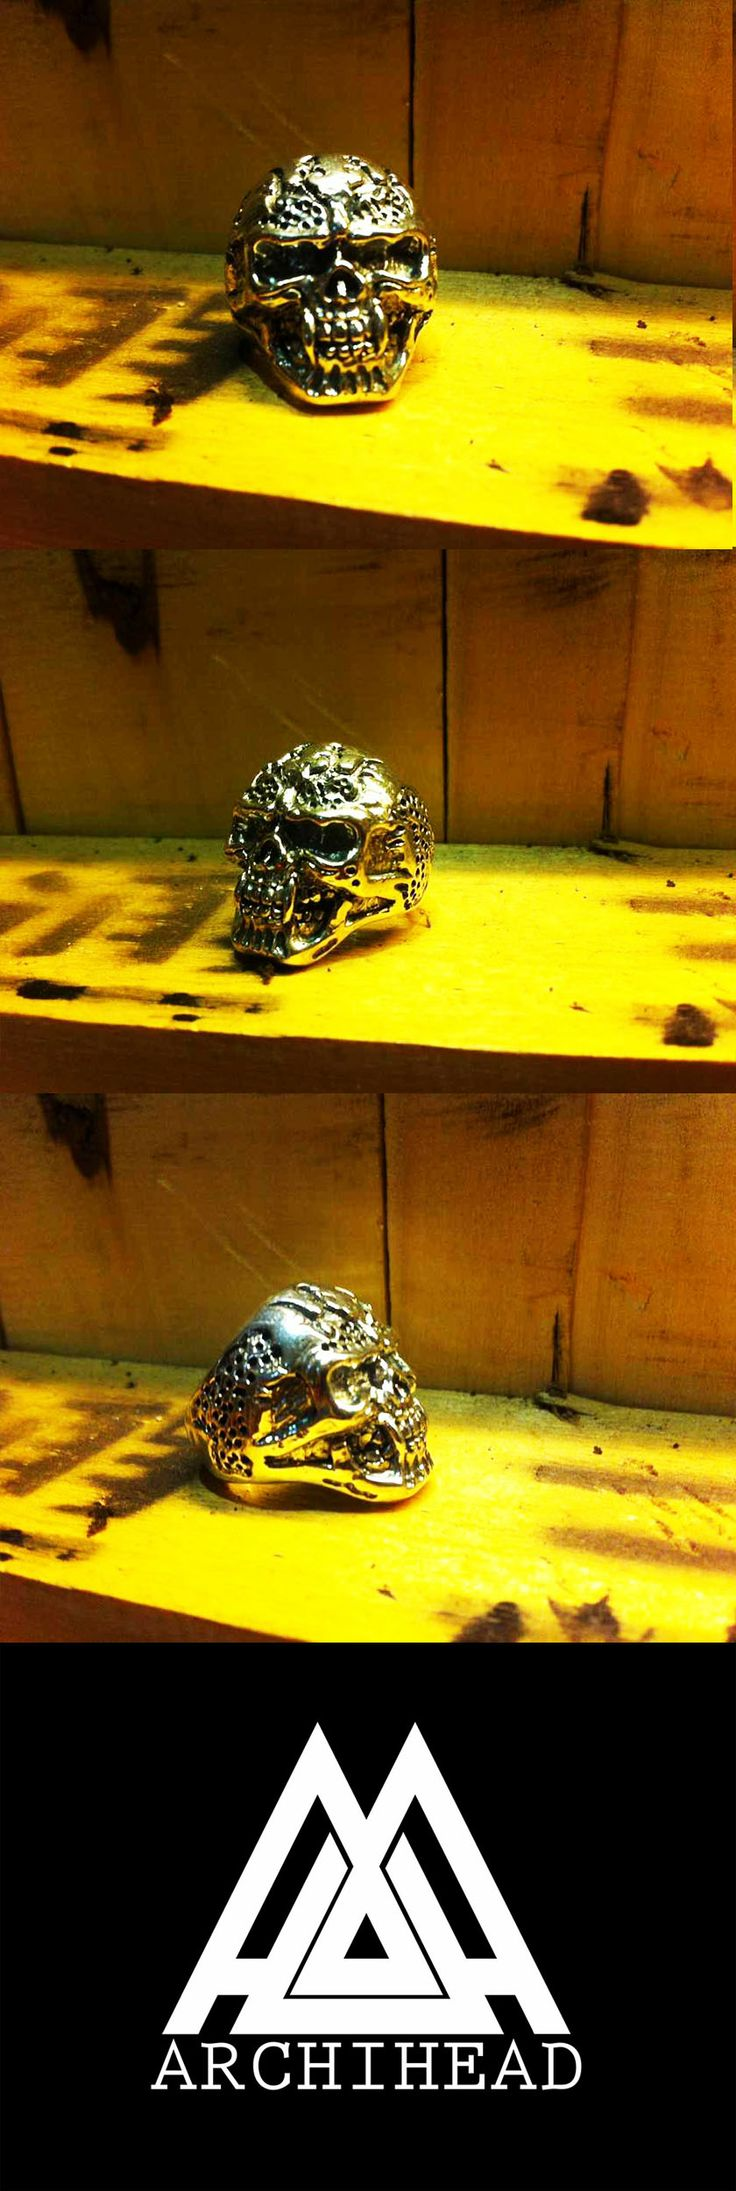 ARCHIHEAD Rings (skull head ) Archiheadproject@gmail.com